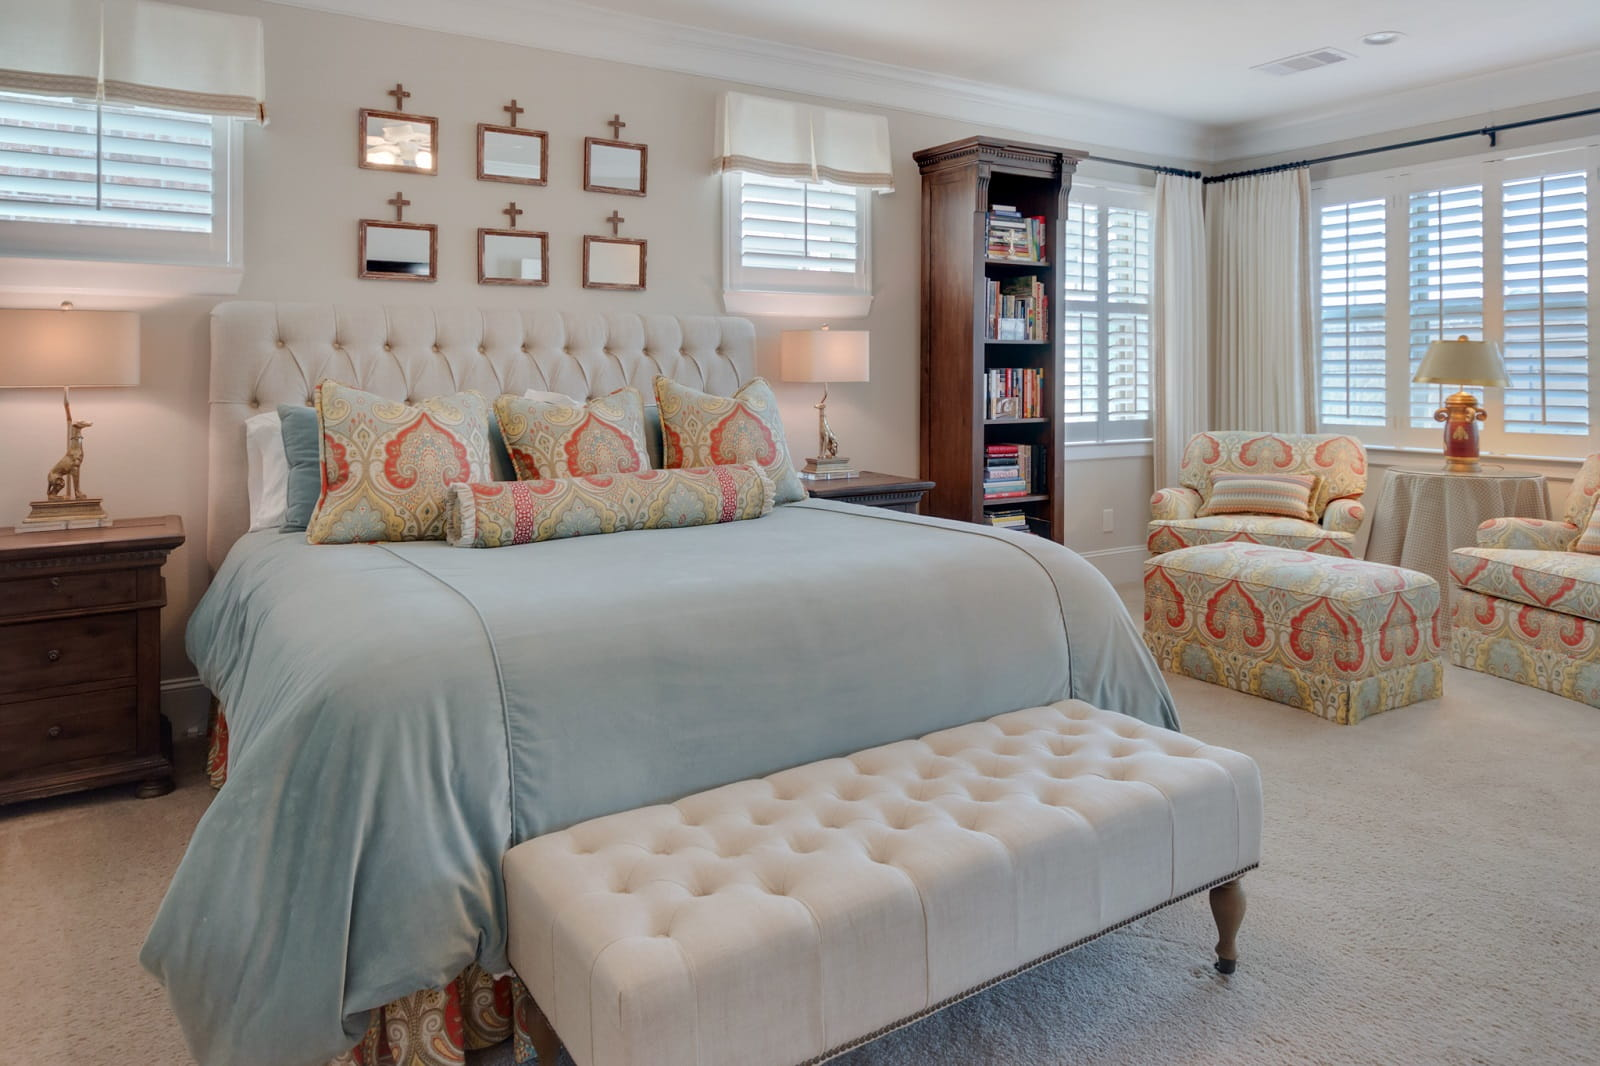 Real Estate Photographers in Sugar Land - TX - Bedroom View